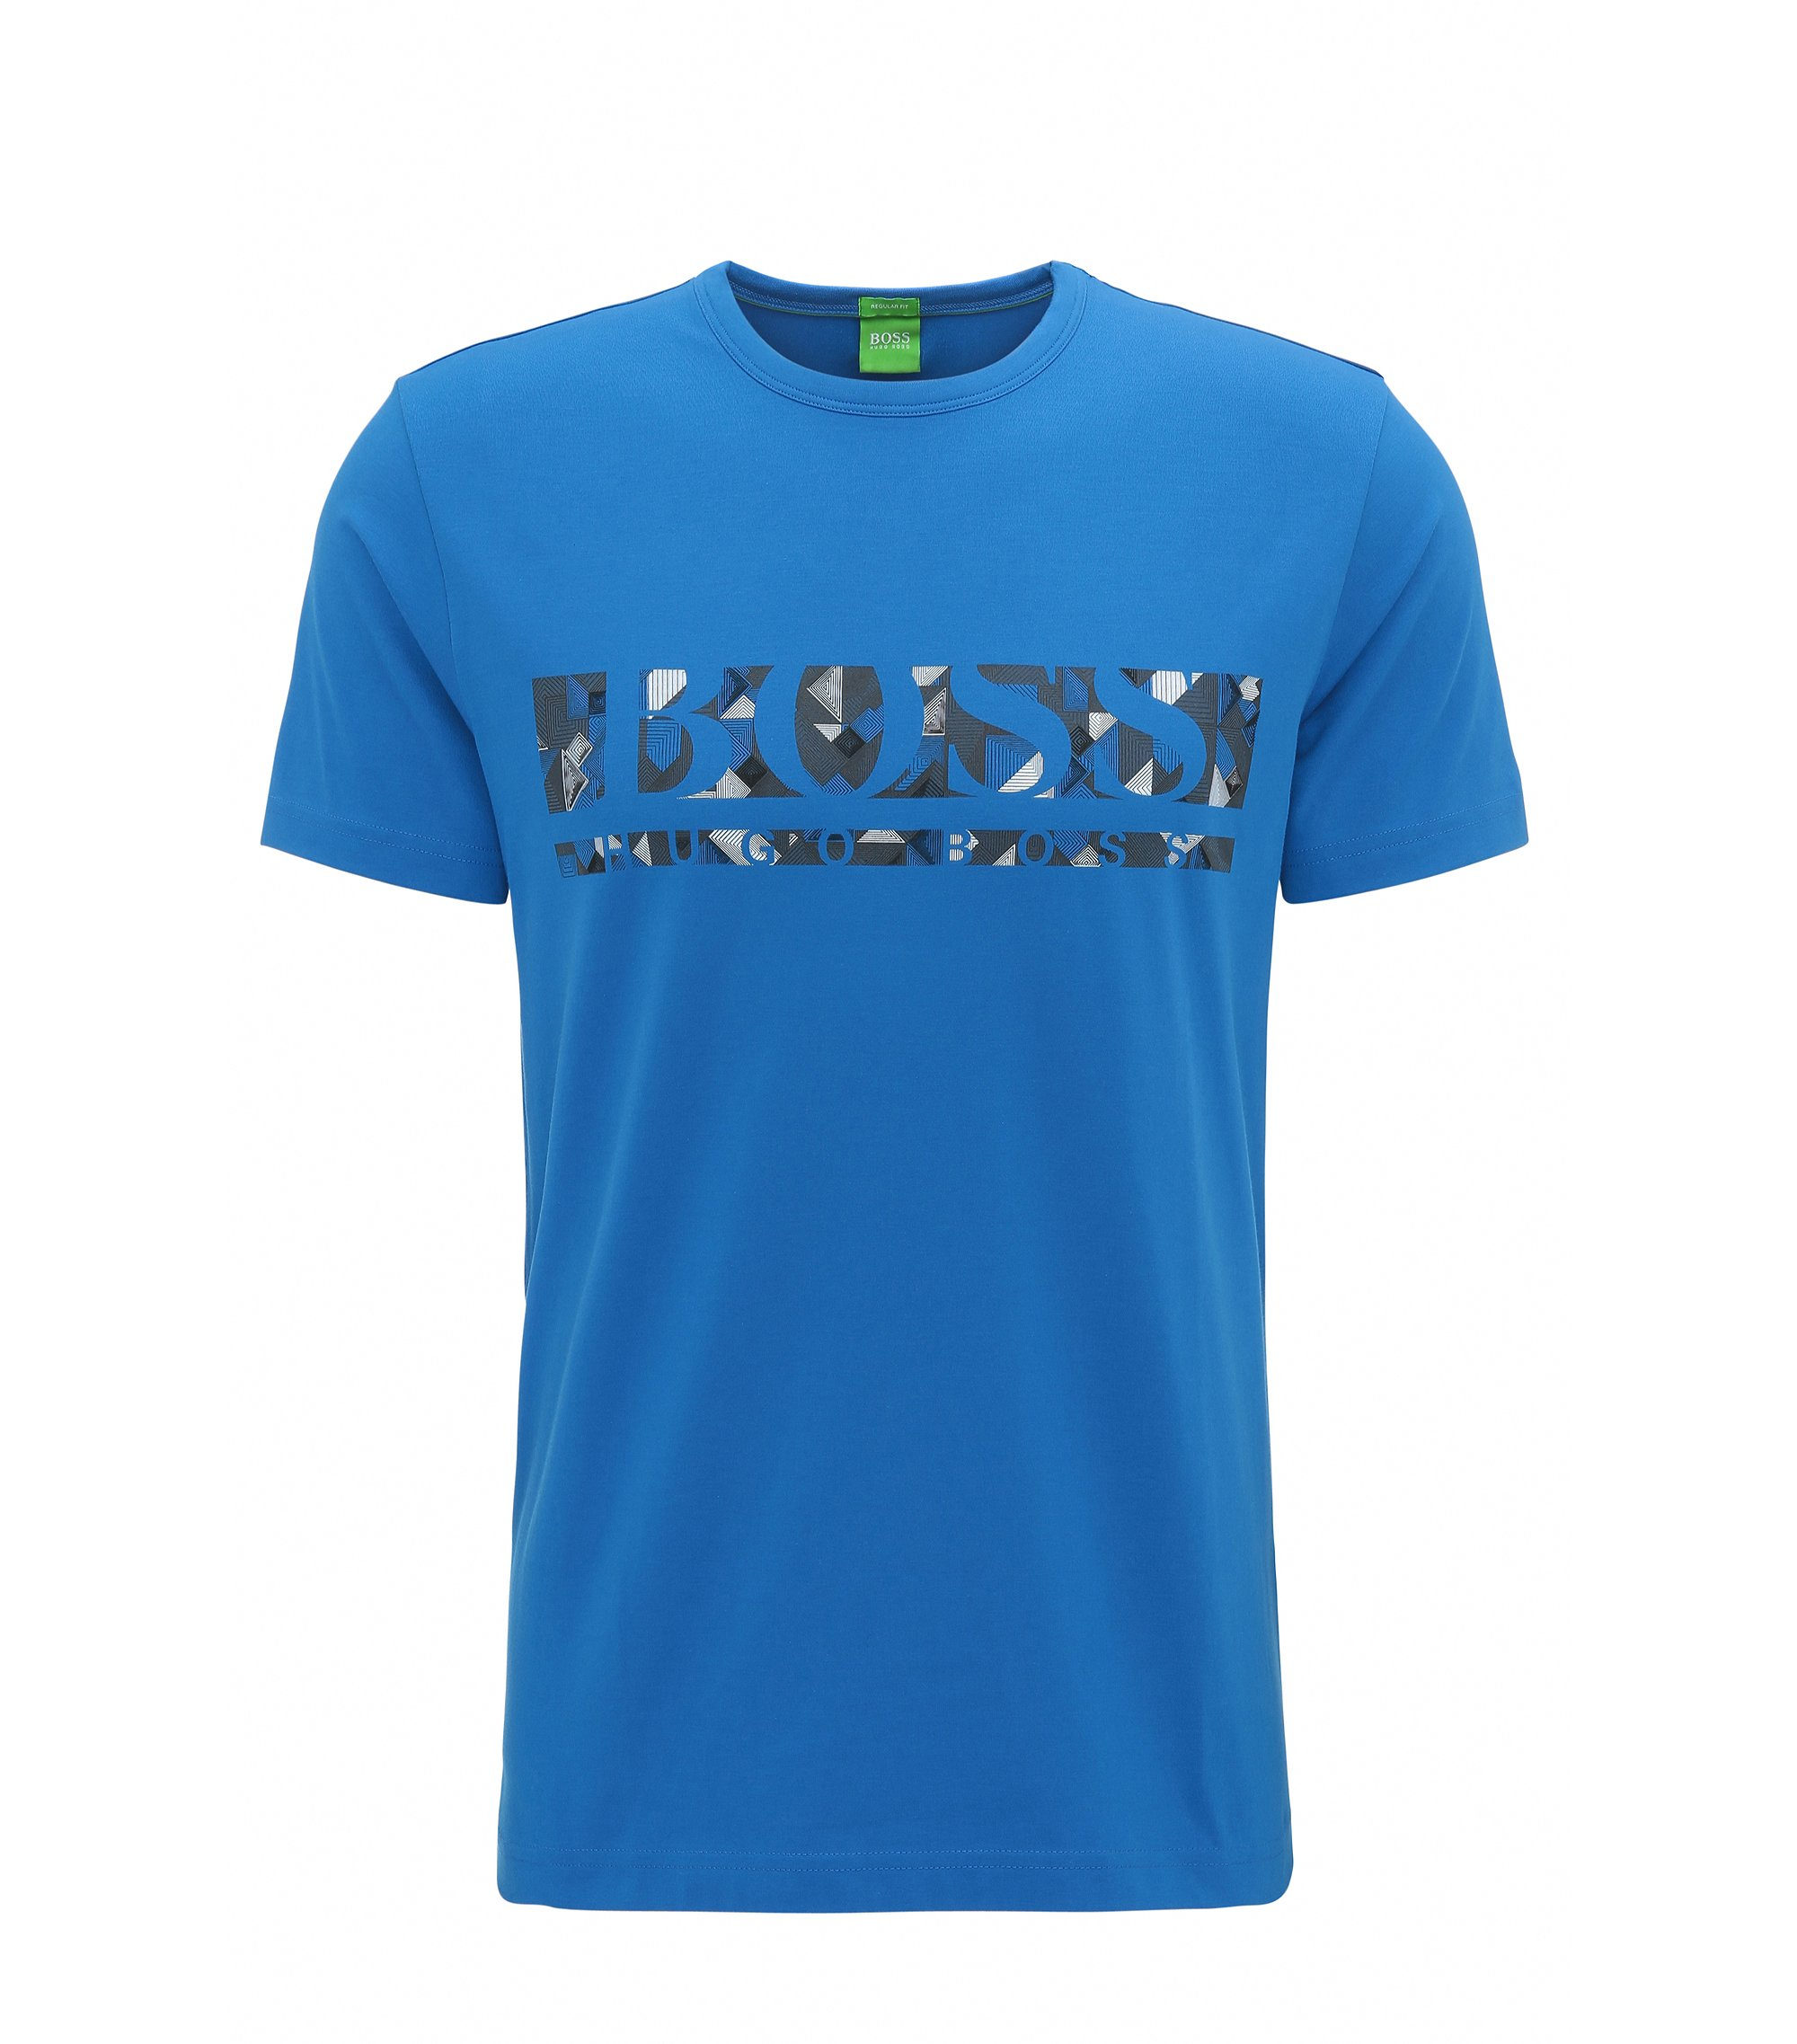 T-shirt Regular Fit en coton stretch avec logo, Bleu